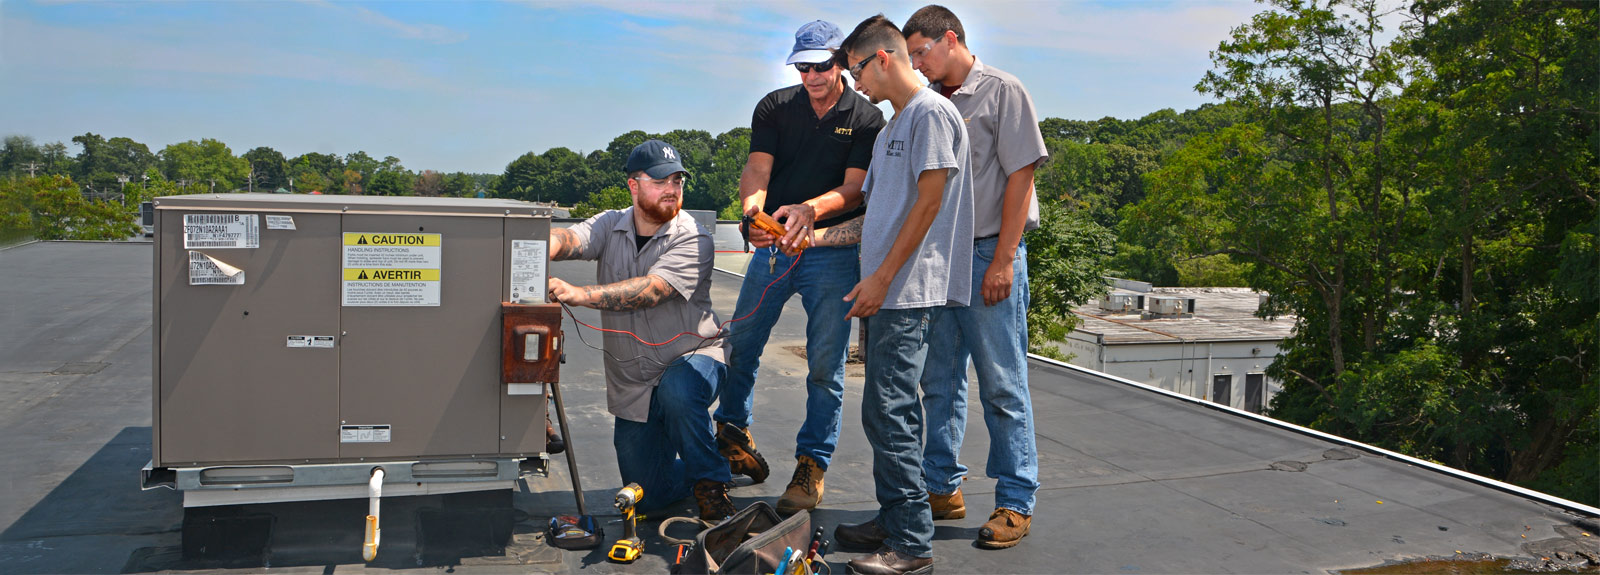 MTTI HVAC/R Technician students and Instructor perform preventive maintenance on roof-top air conditioning units.